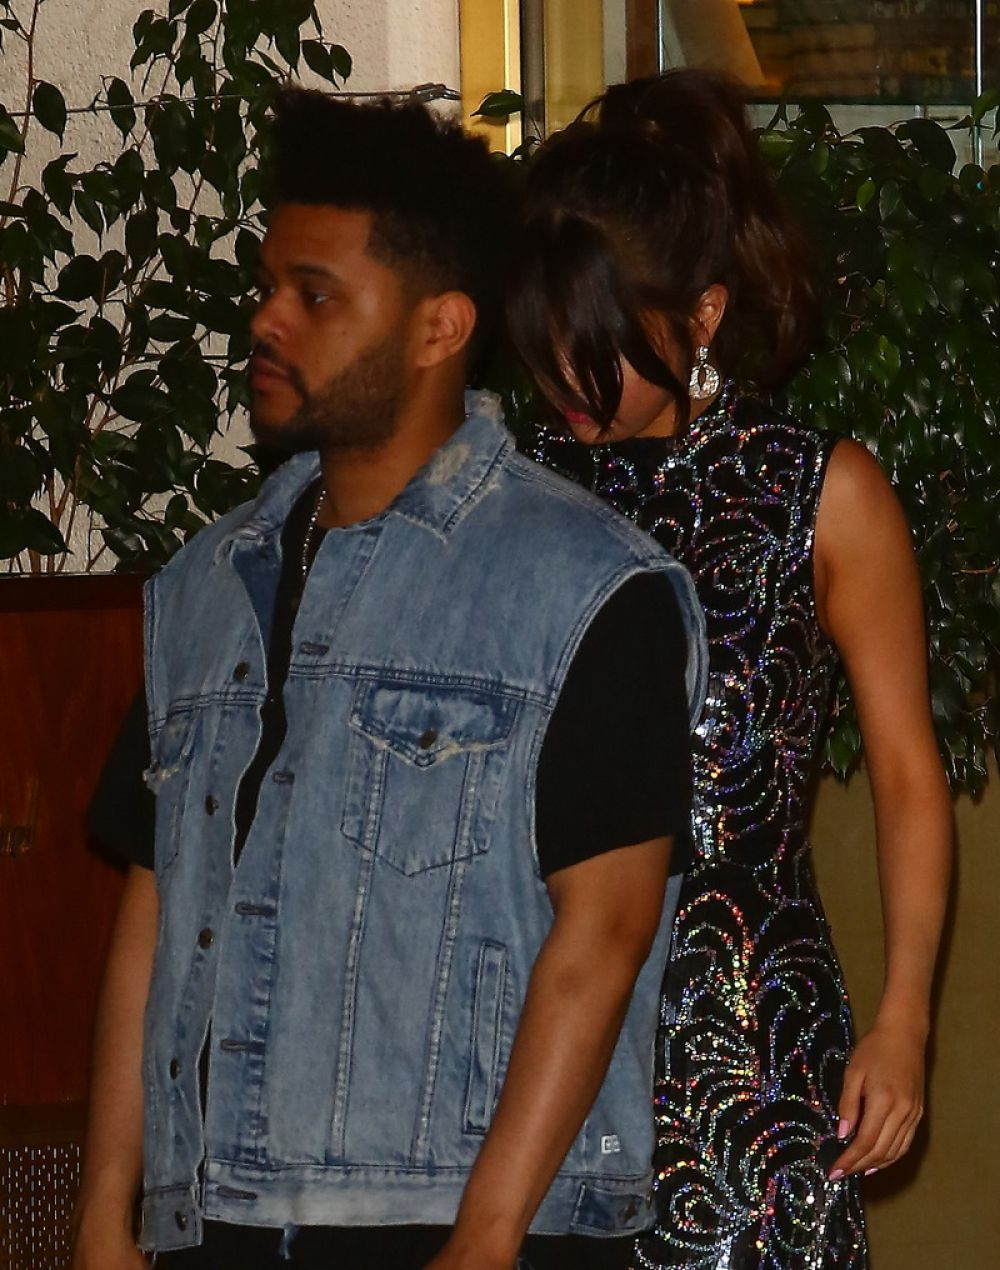 SELENA GOMEZ and The Weeknd Night Out in Los Angeles 07/24/2017